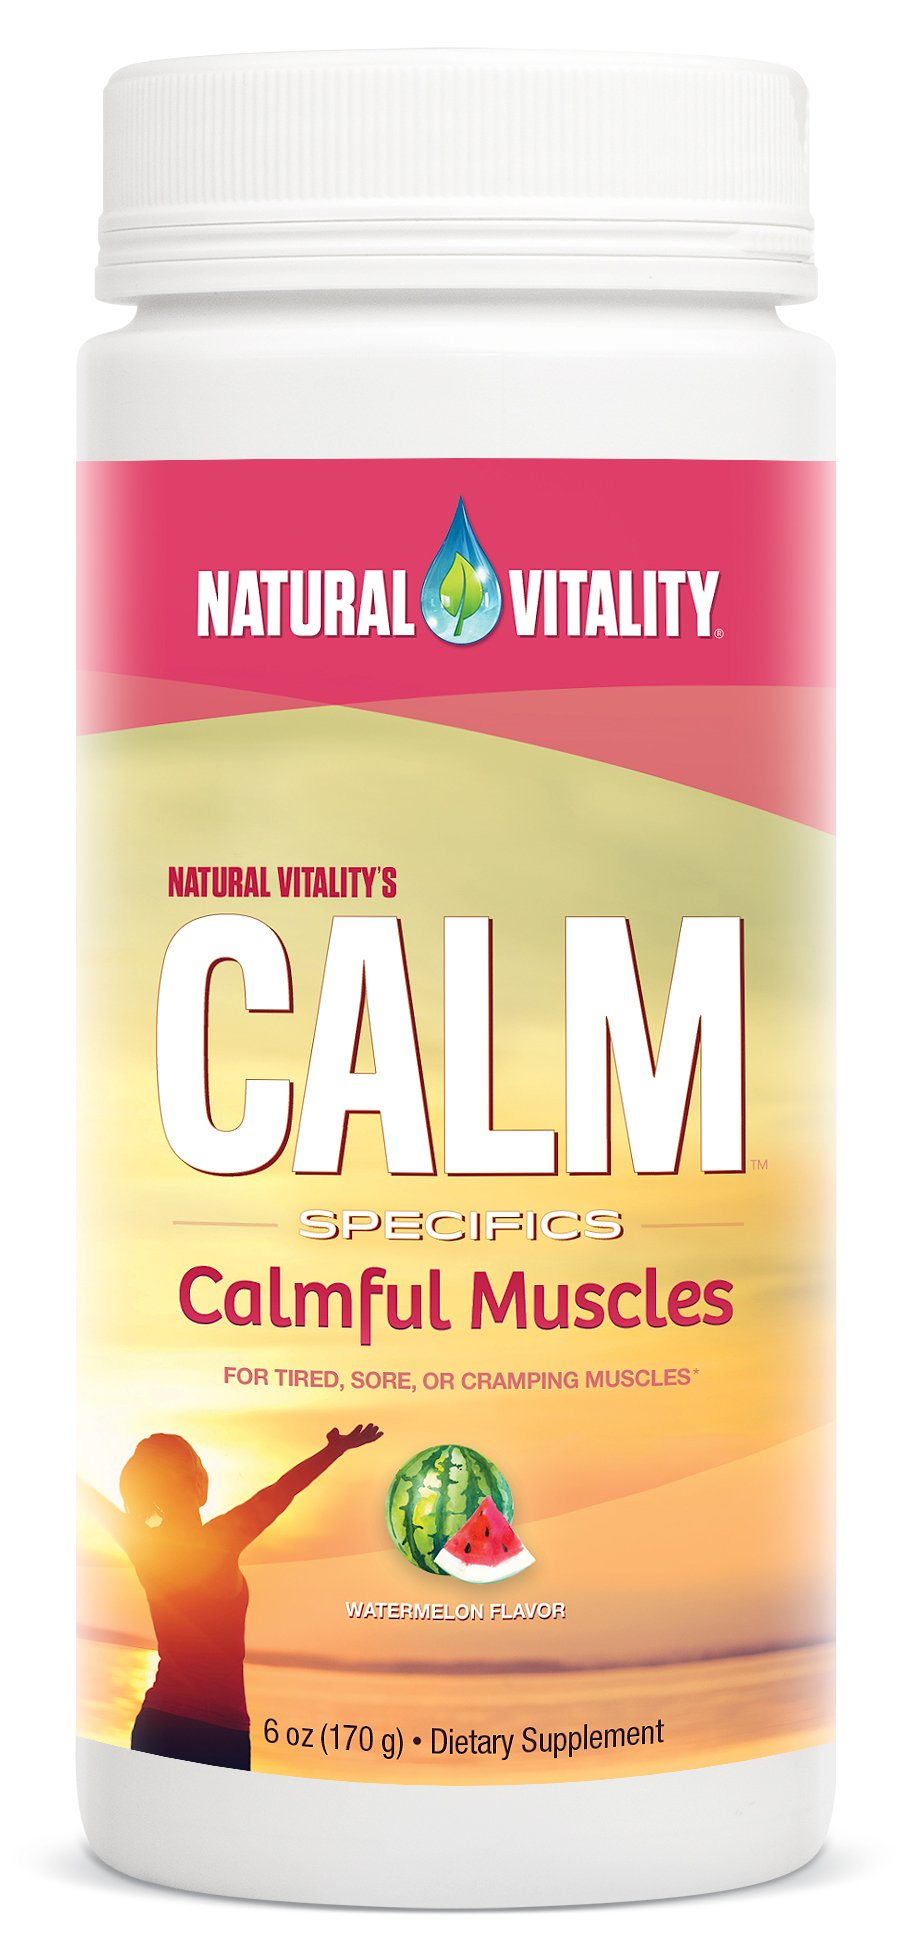 Natural Vitality Calm Specifics Calmful Muscles - for Tired, Sore, or Cramping Muscles - Watermelon 6 oz